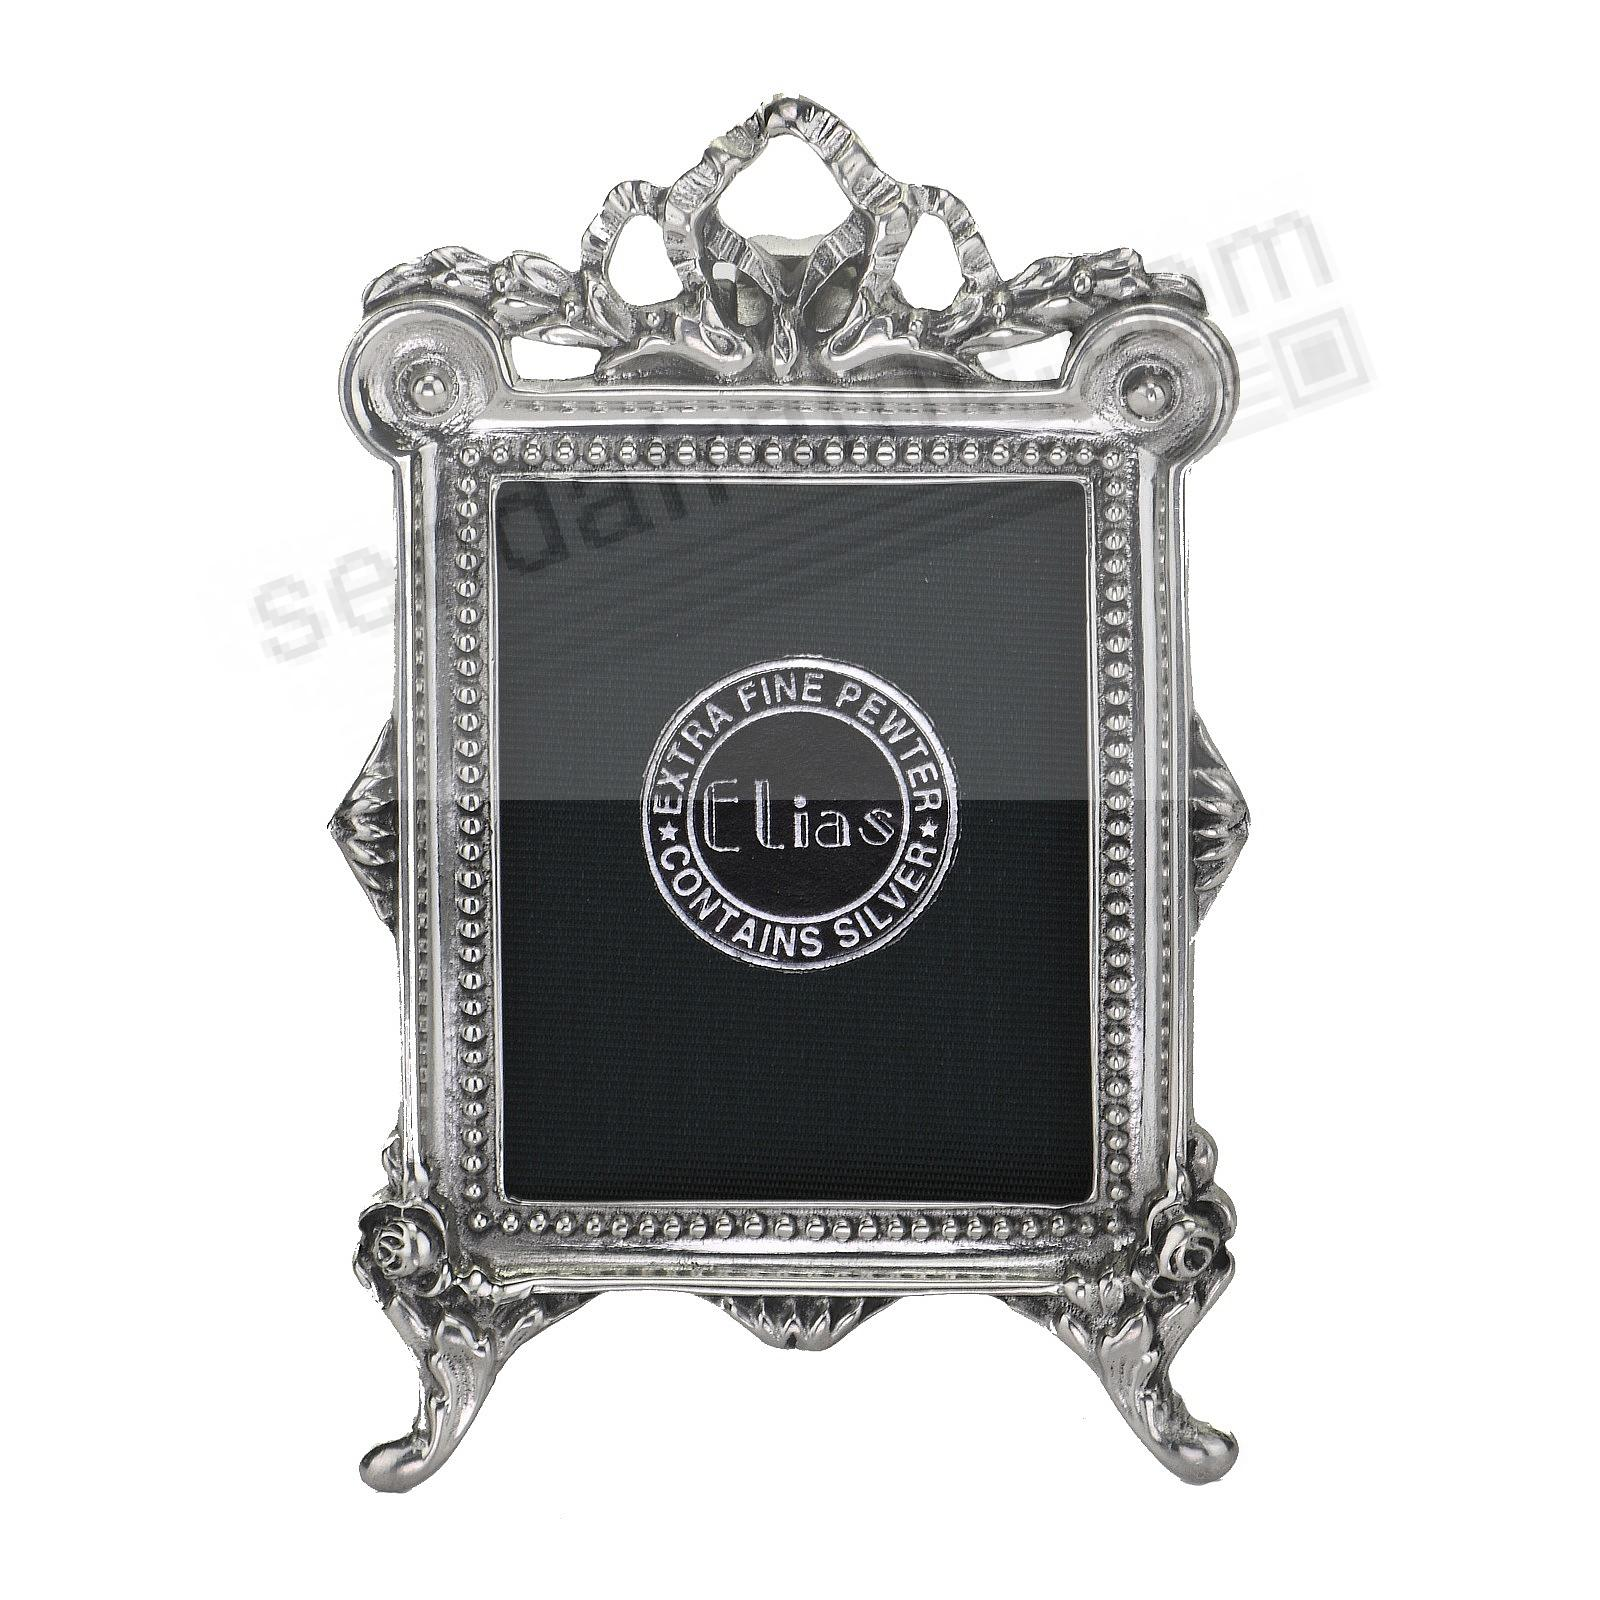 ENGLISH PEDESTAL silvered Fine Pewter by Elias Artmetal®